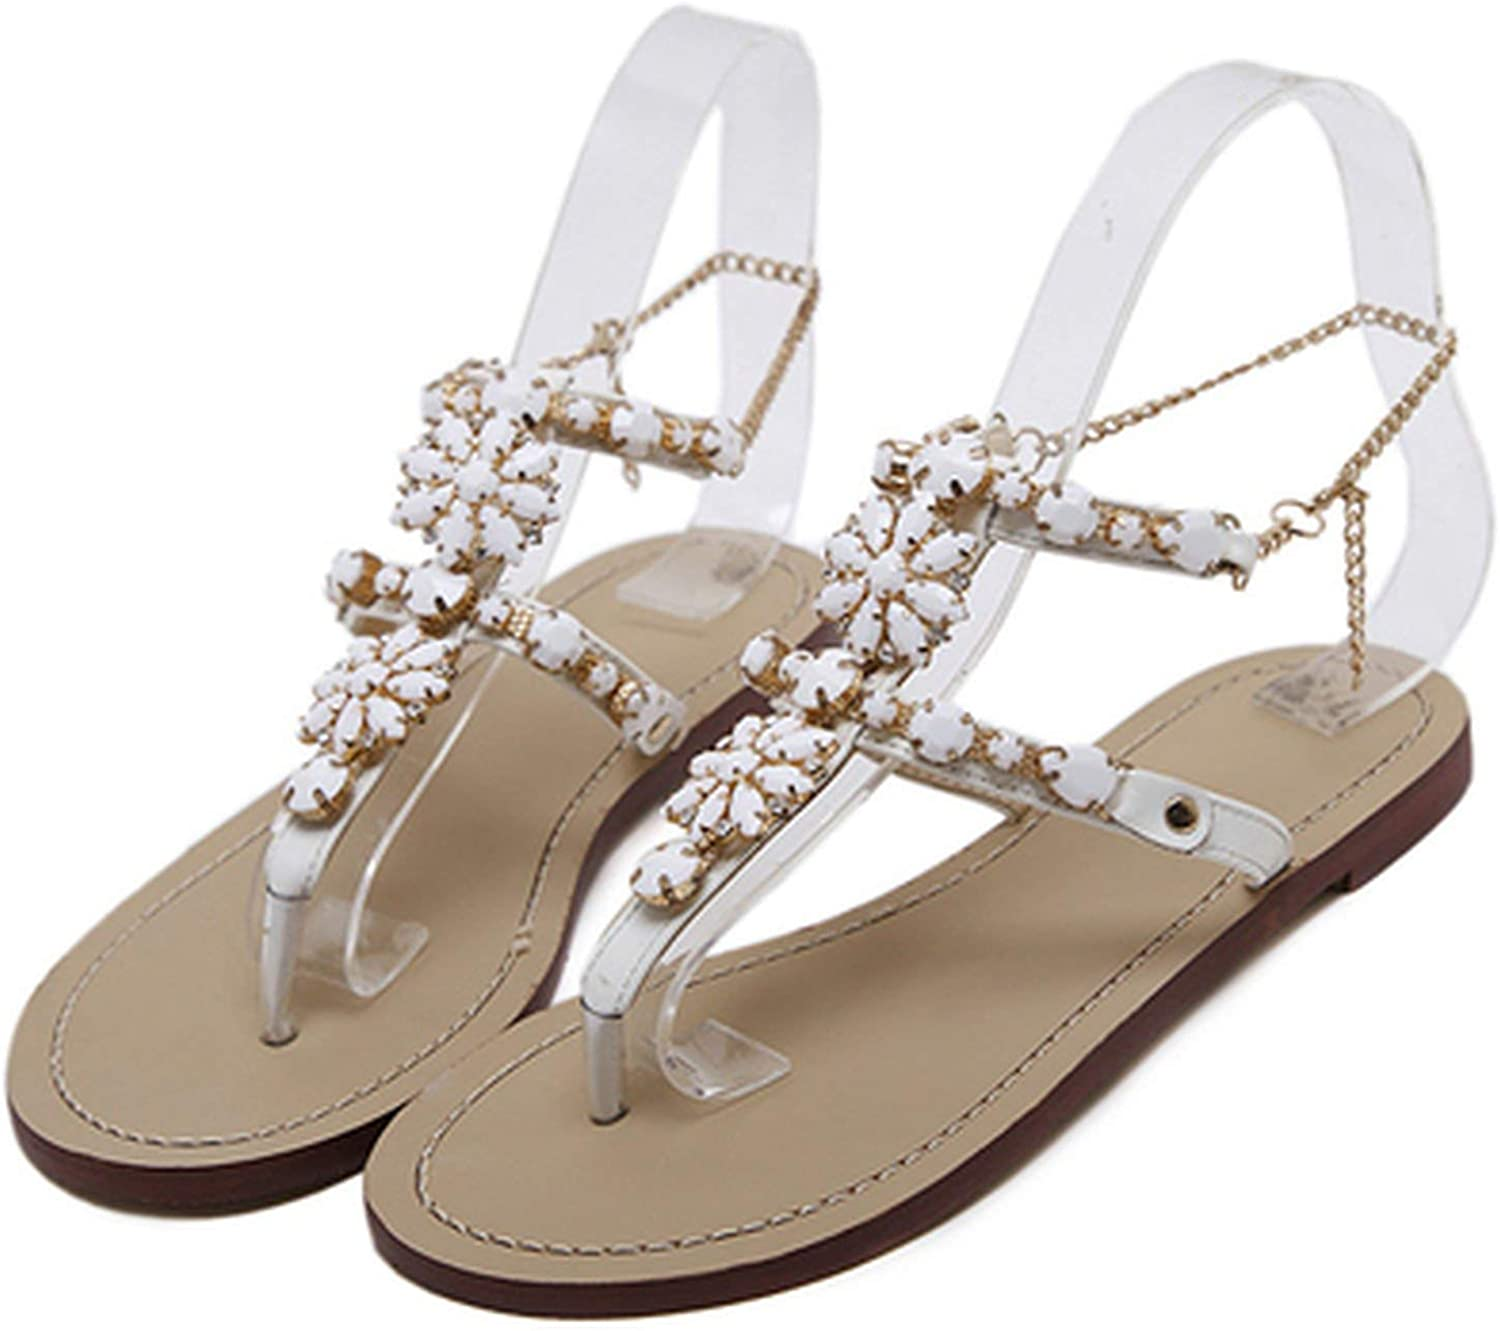 Monicas-house New Leisure Women Sandals Slippers shoes Rhinestones Crystal Chains Gladiator Flat Sandals Plus Size 35-43